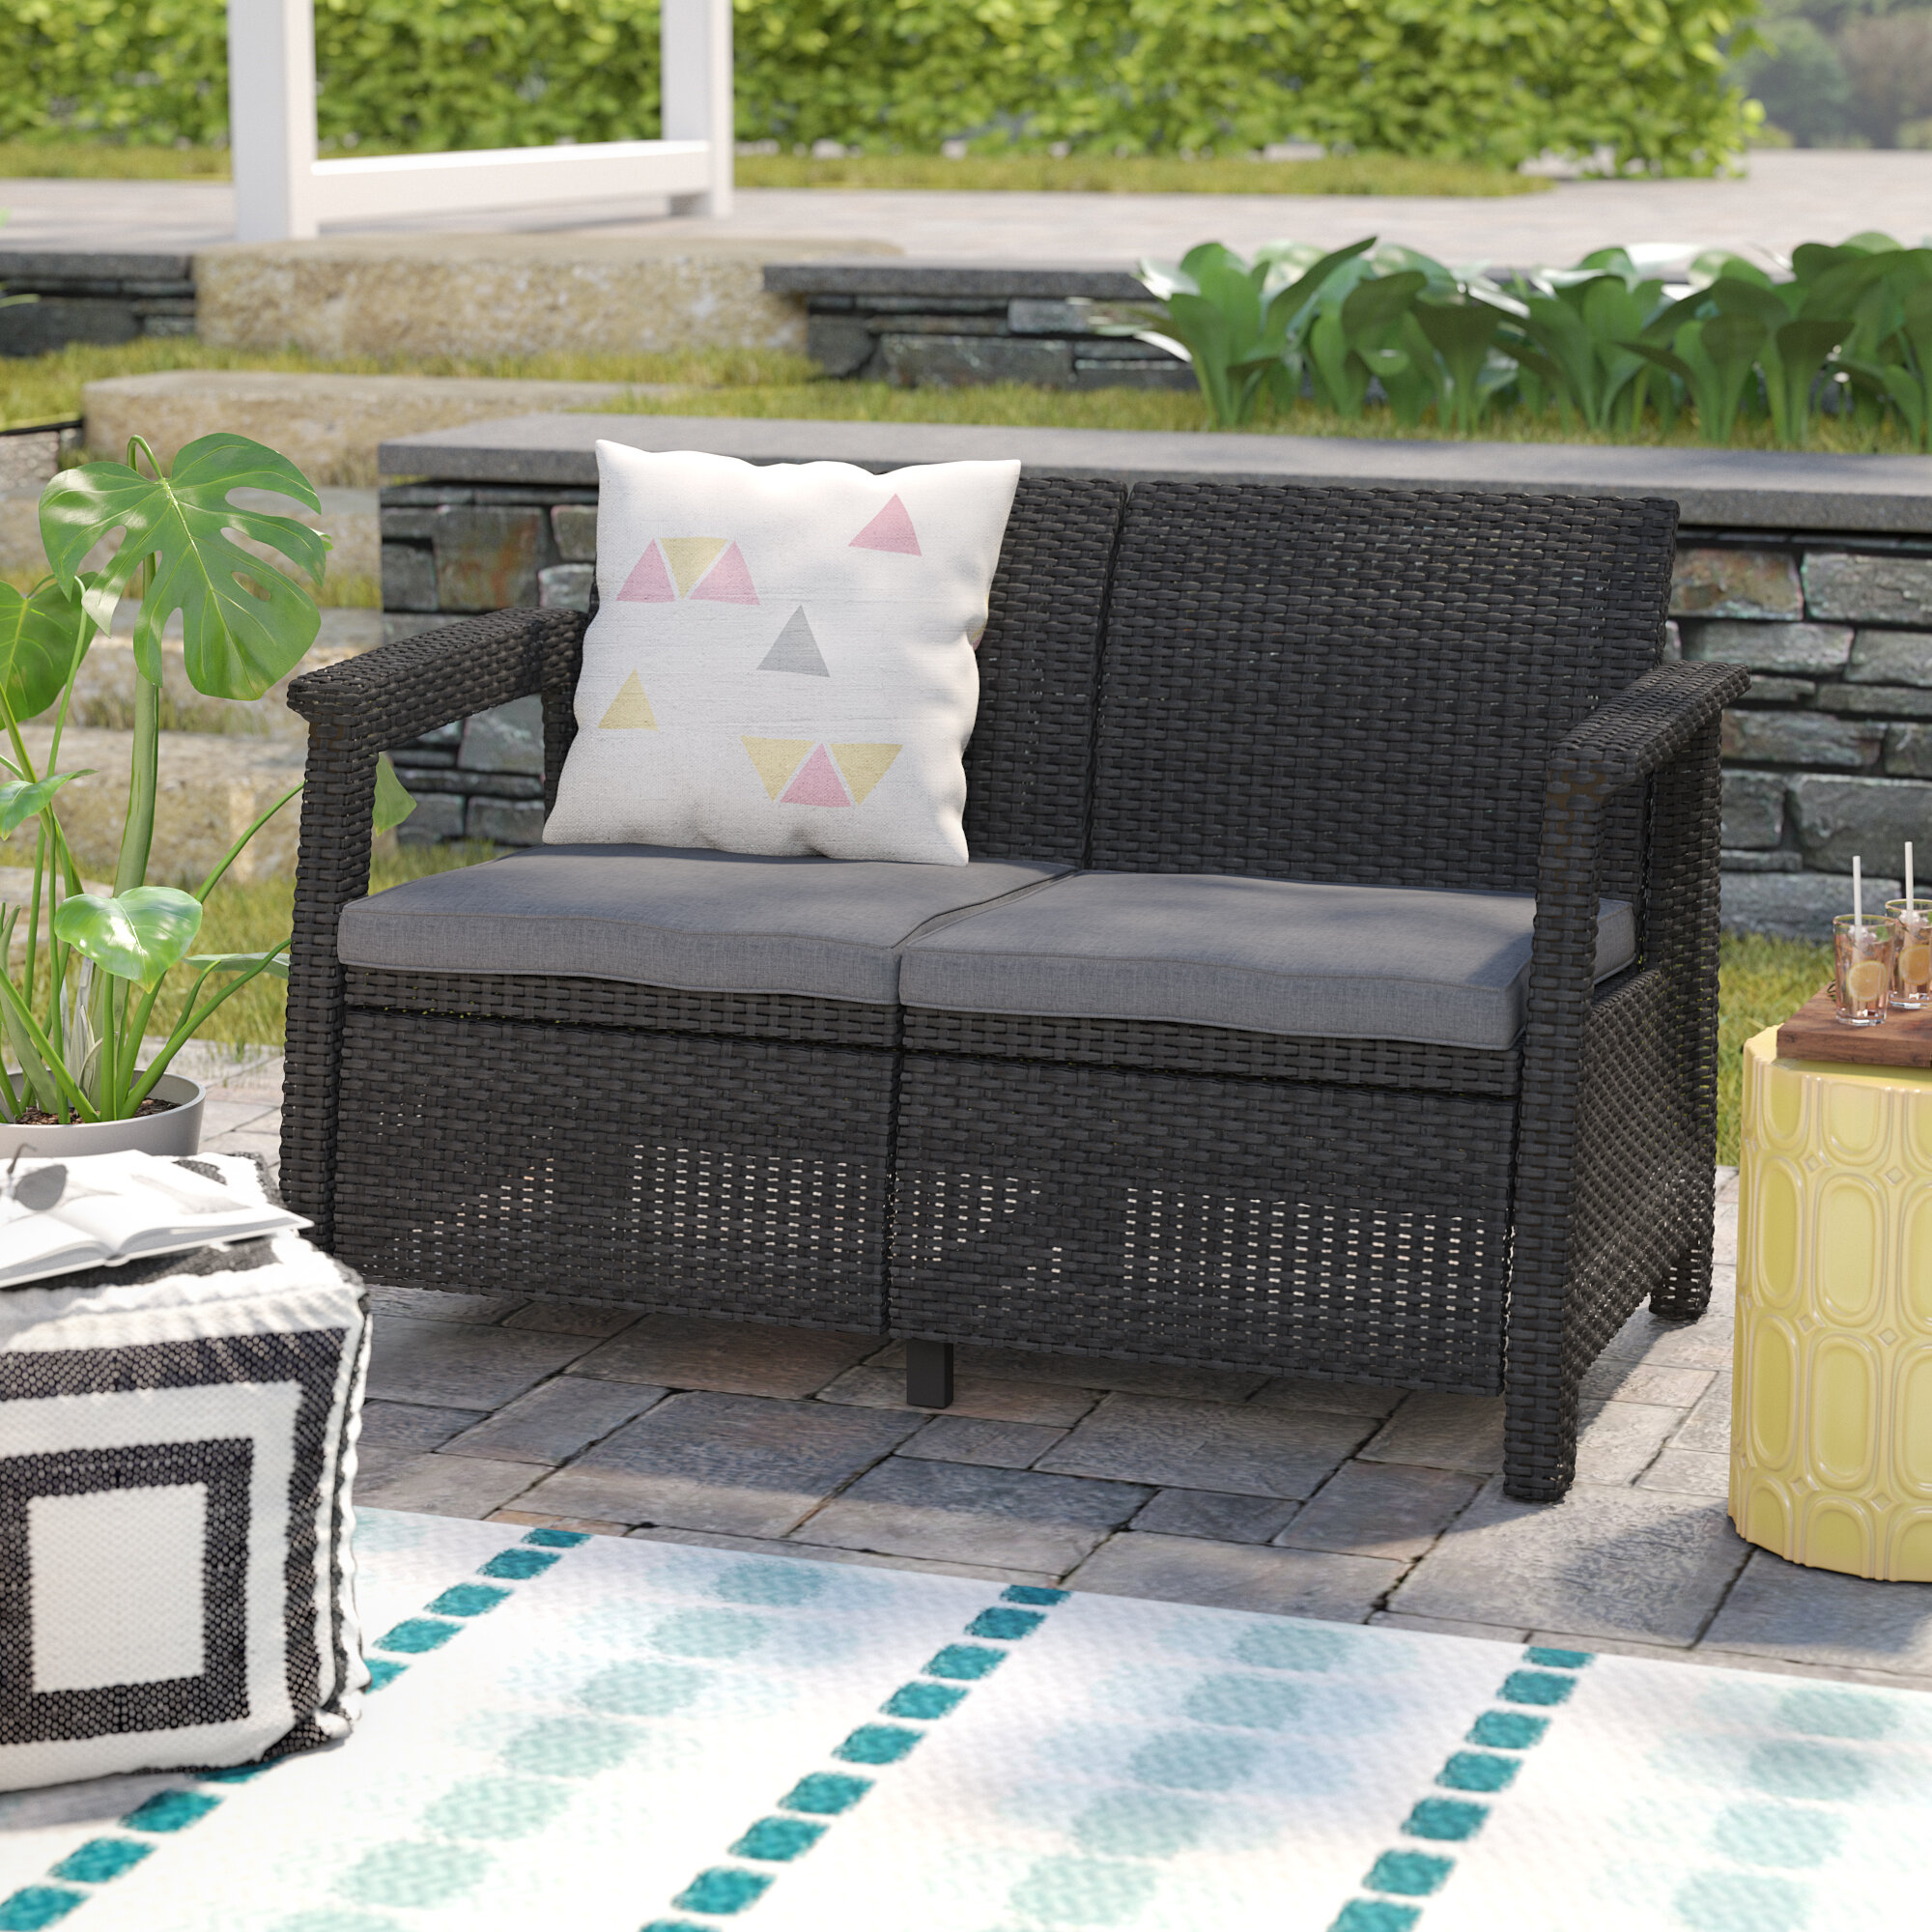 with wicker outdoor p loveseat hampton spring bay blue sky all haven weather cushions patio loveseats brown